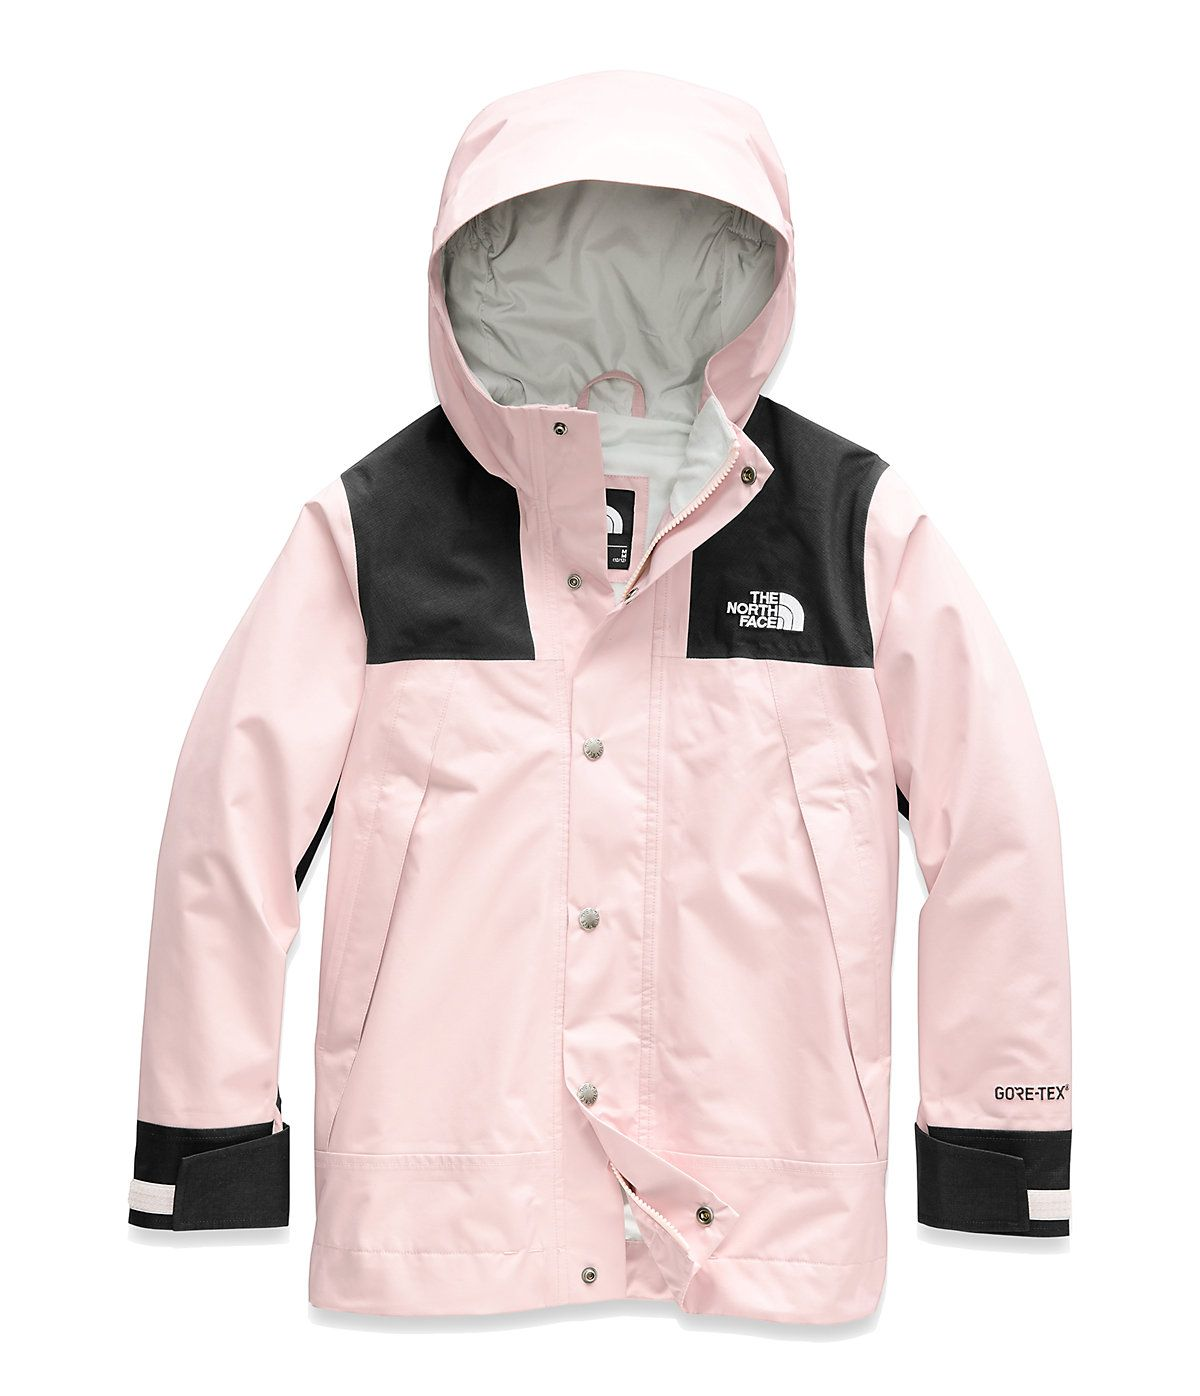 Youth Mountain Gtx Jacket Free Shipping The North Face North Face Jacket Winter Jacket North Face Rain Jackets Outfit [ 1396 x 1200 Pixel ]